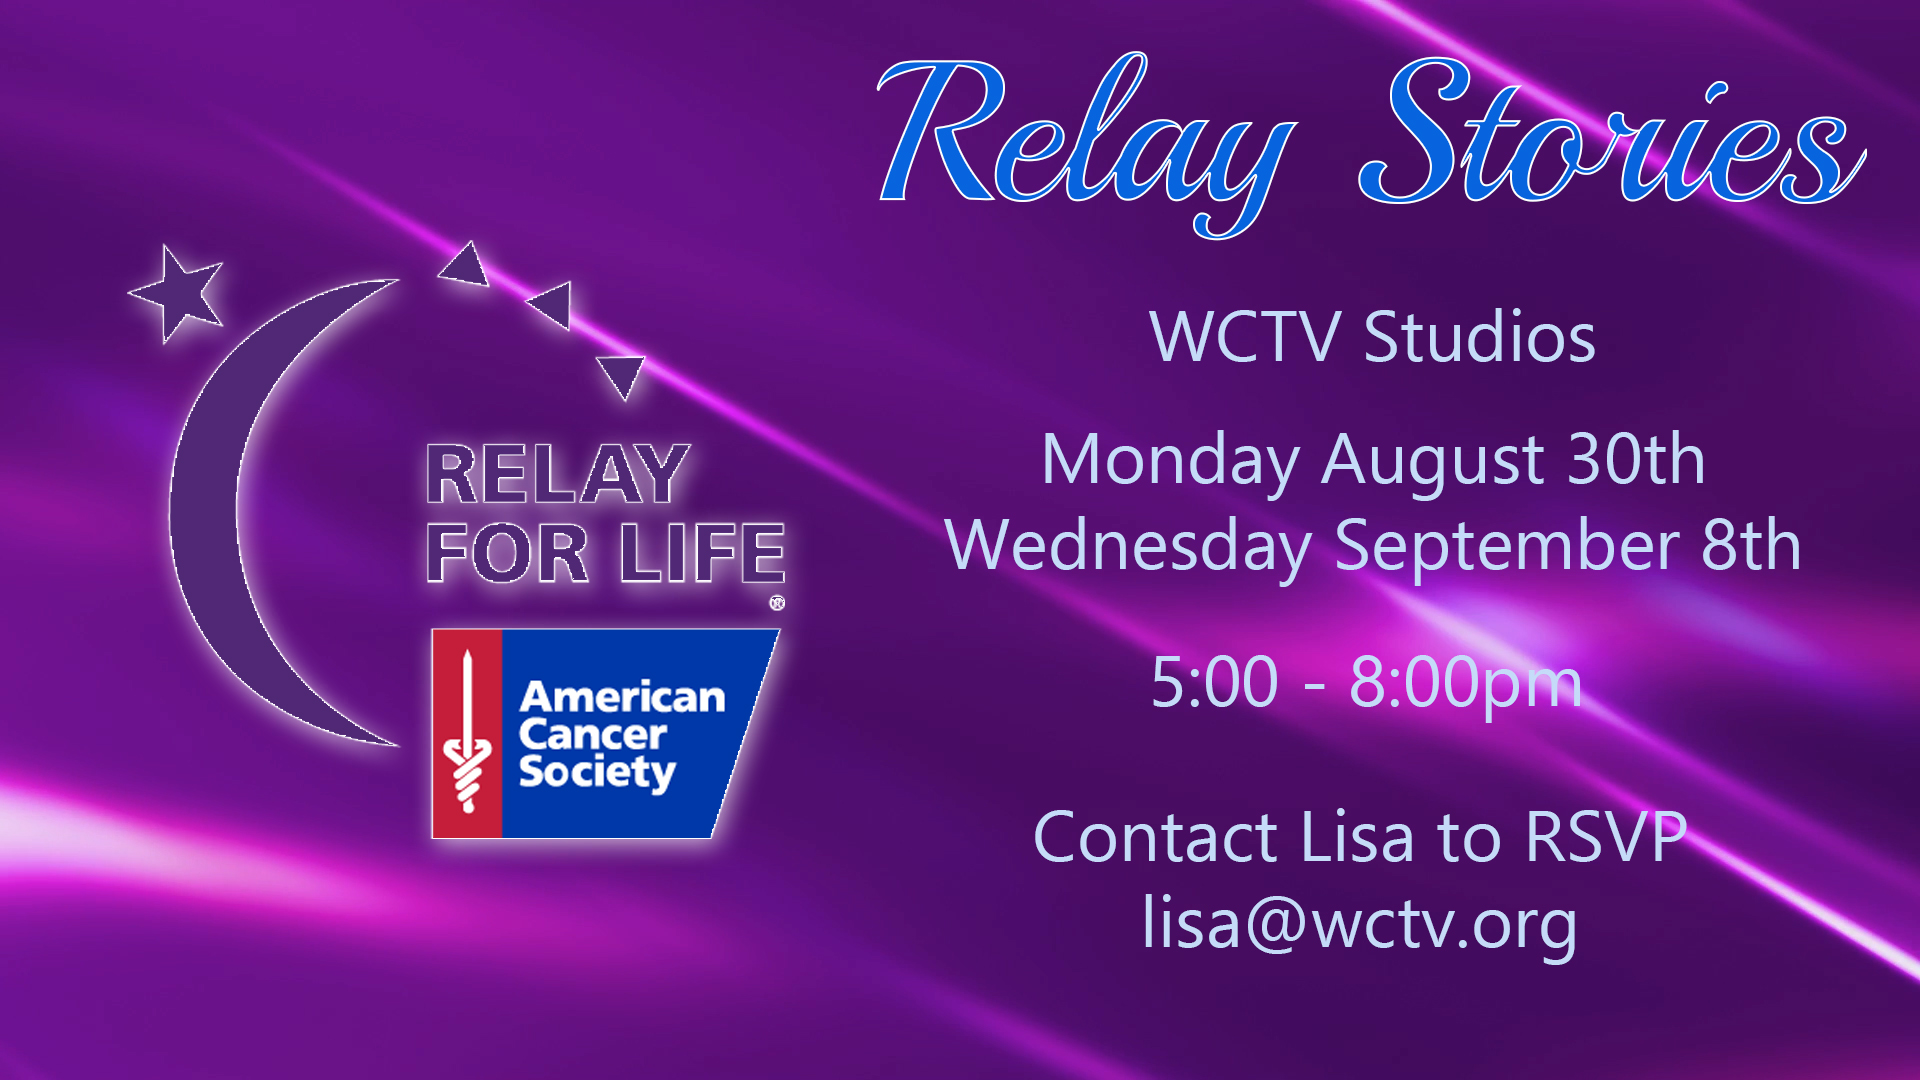 Relay Stories